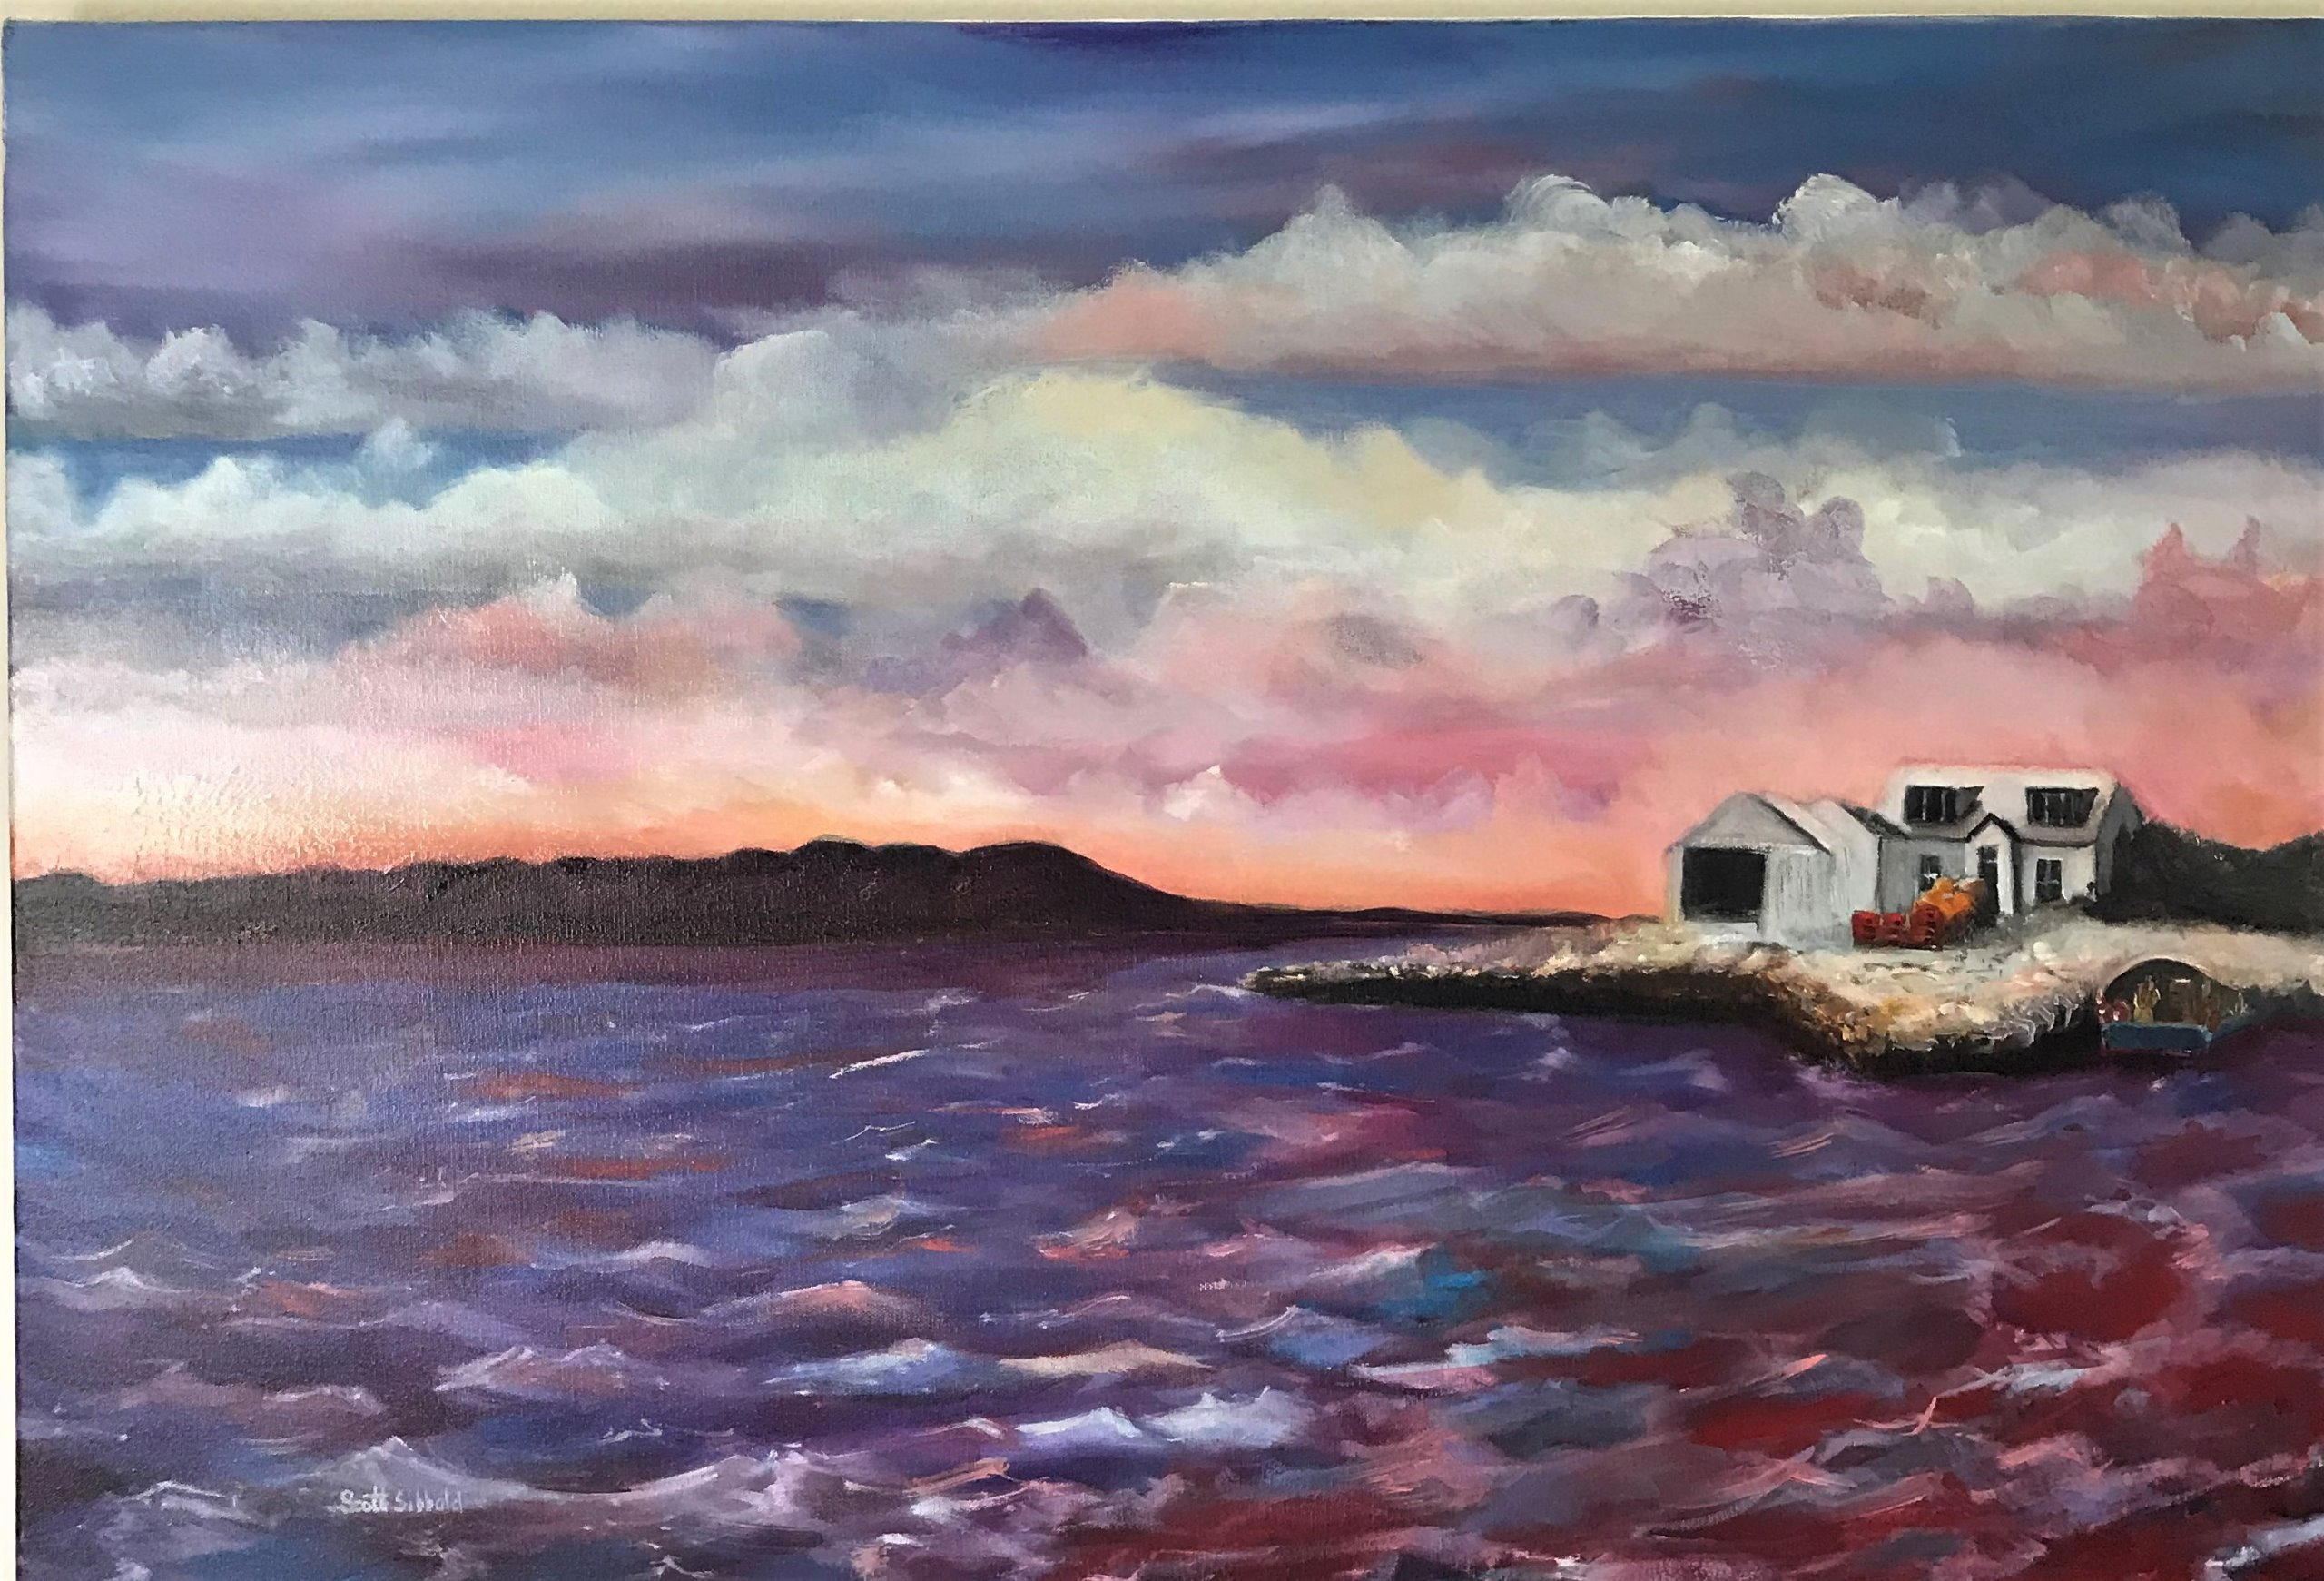 """""""Red Skye"""" Oil on Canvas a new Painting by Scott Sibbald"""